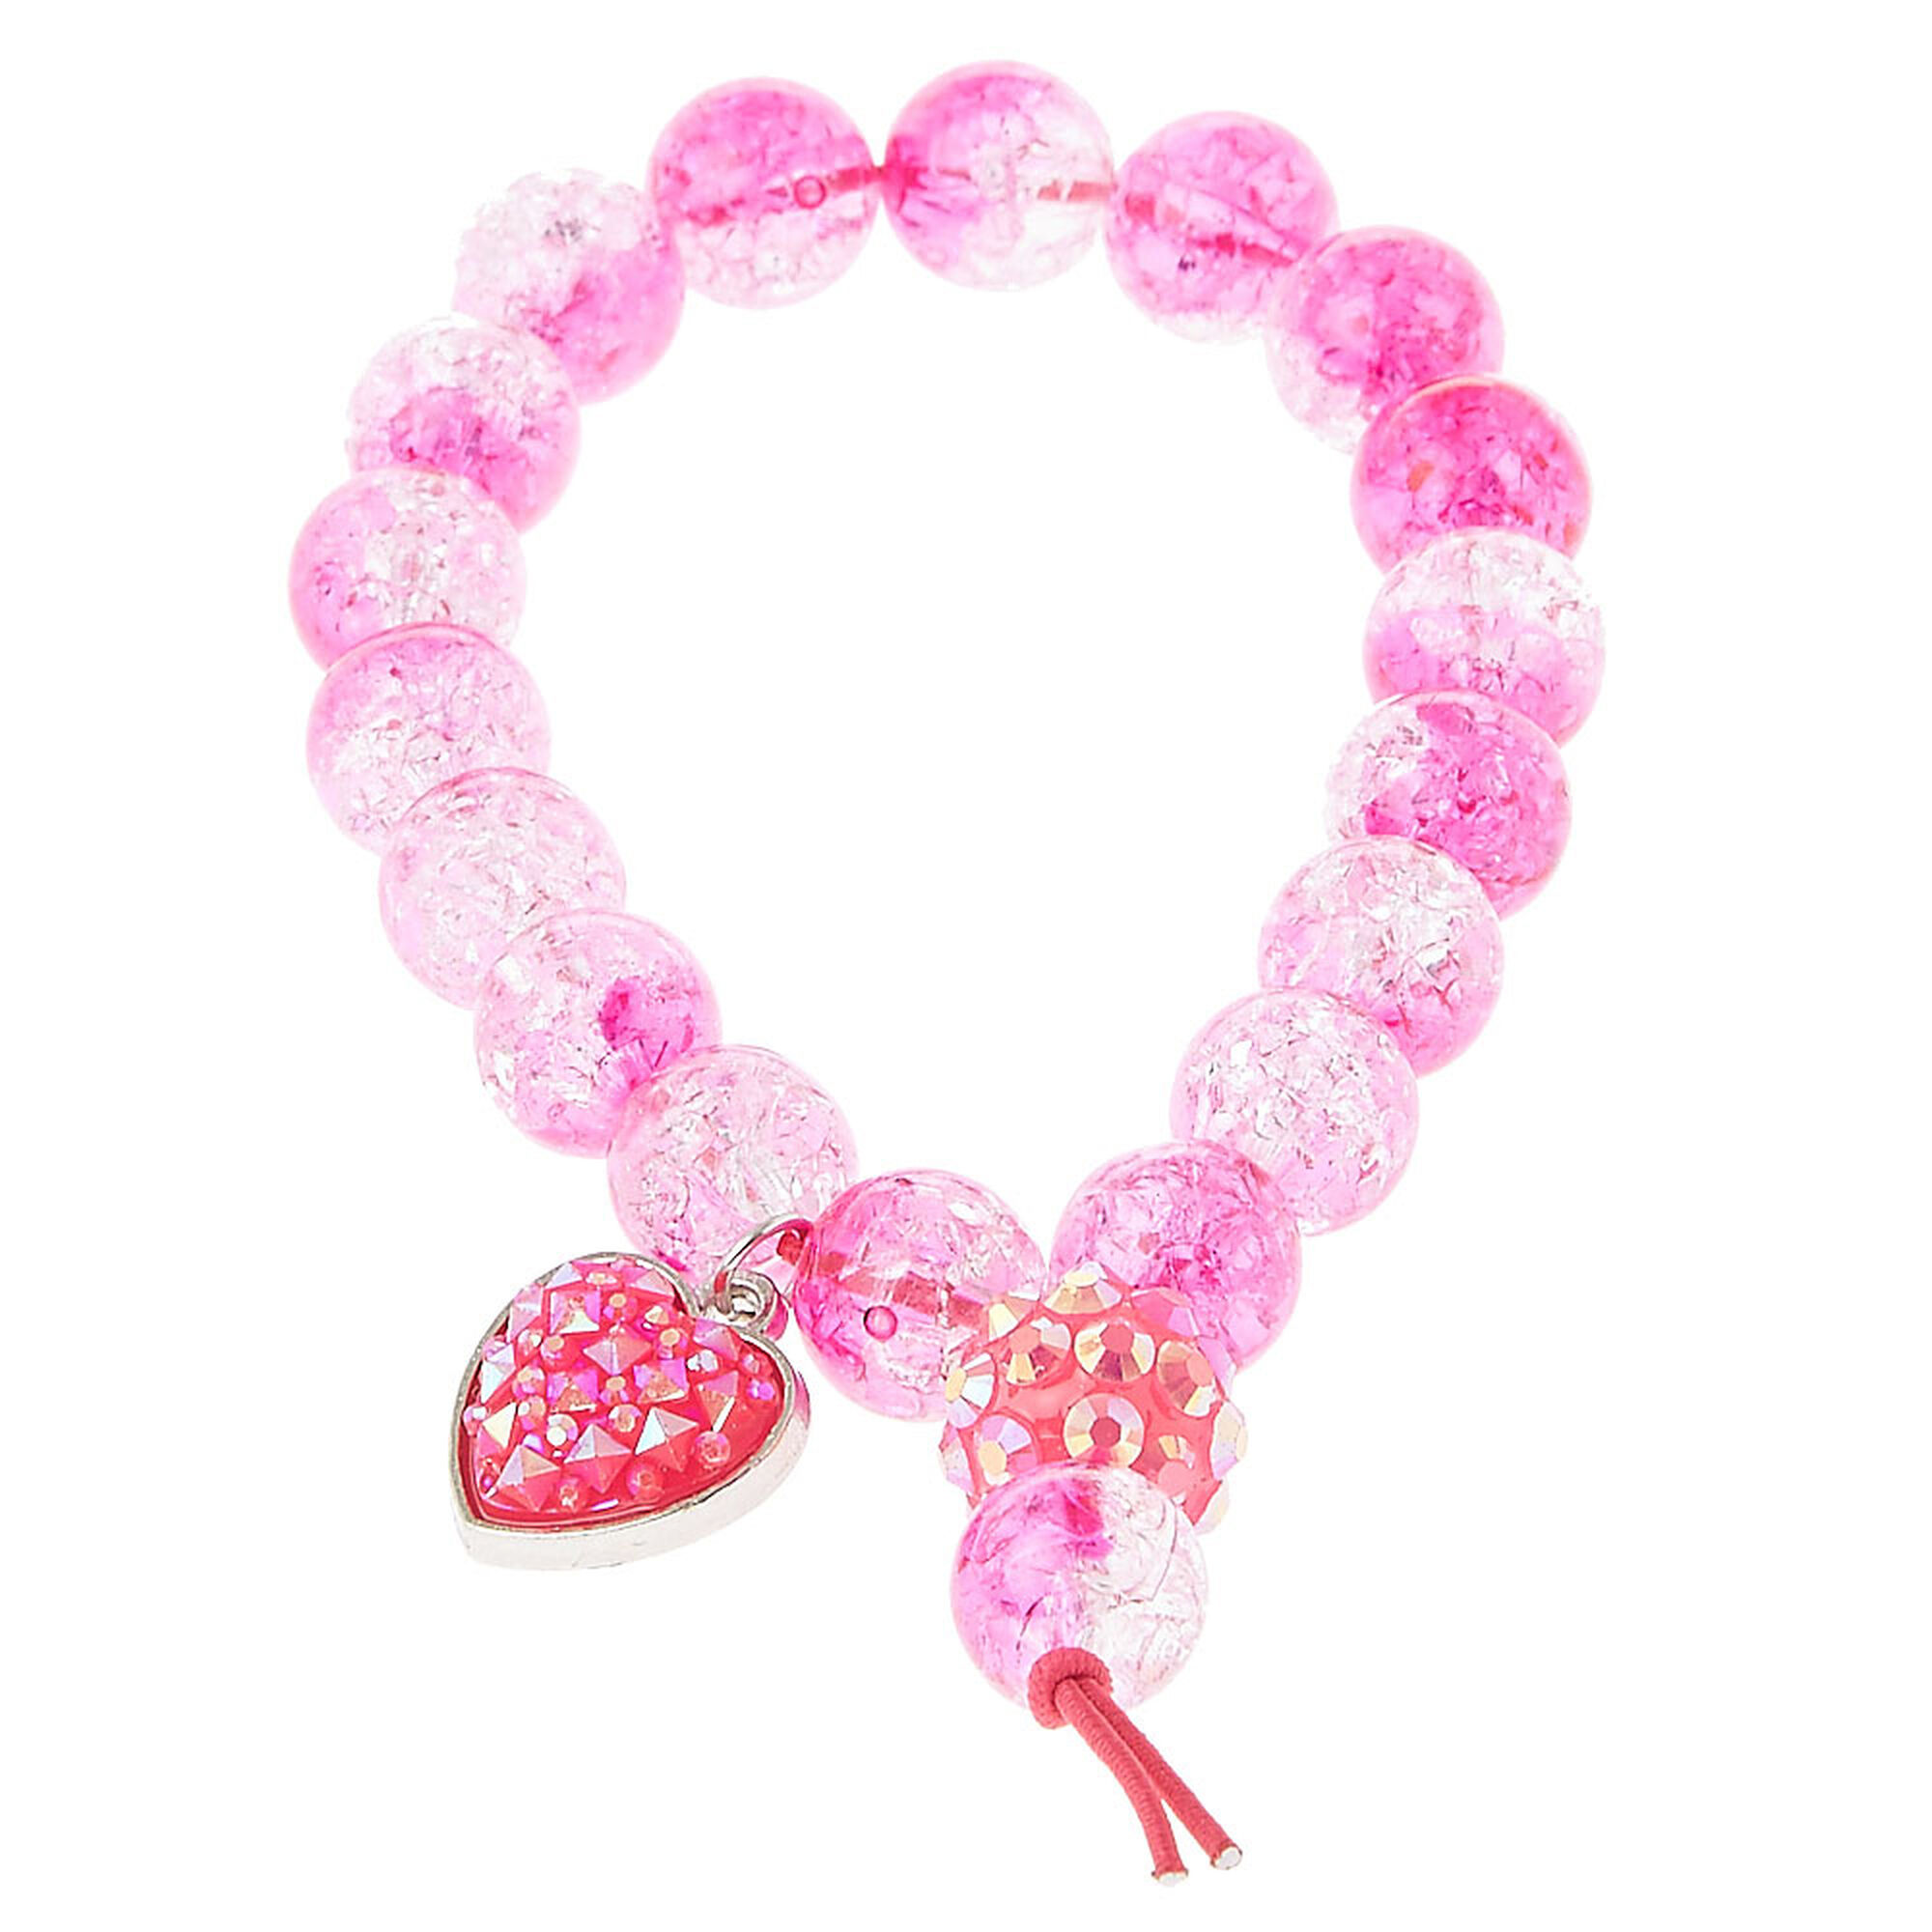 Cracked Pink Bead Stretch Bracelet with Heart Charm